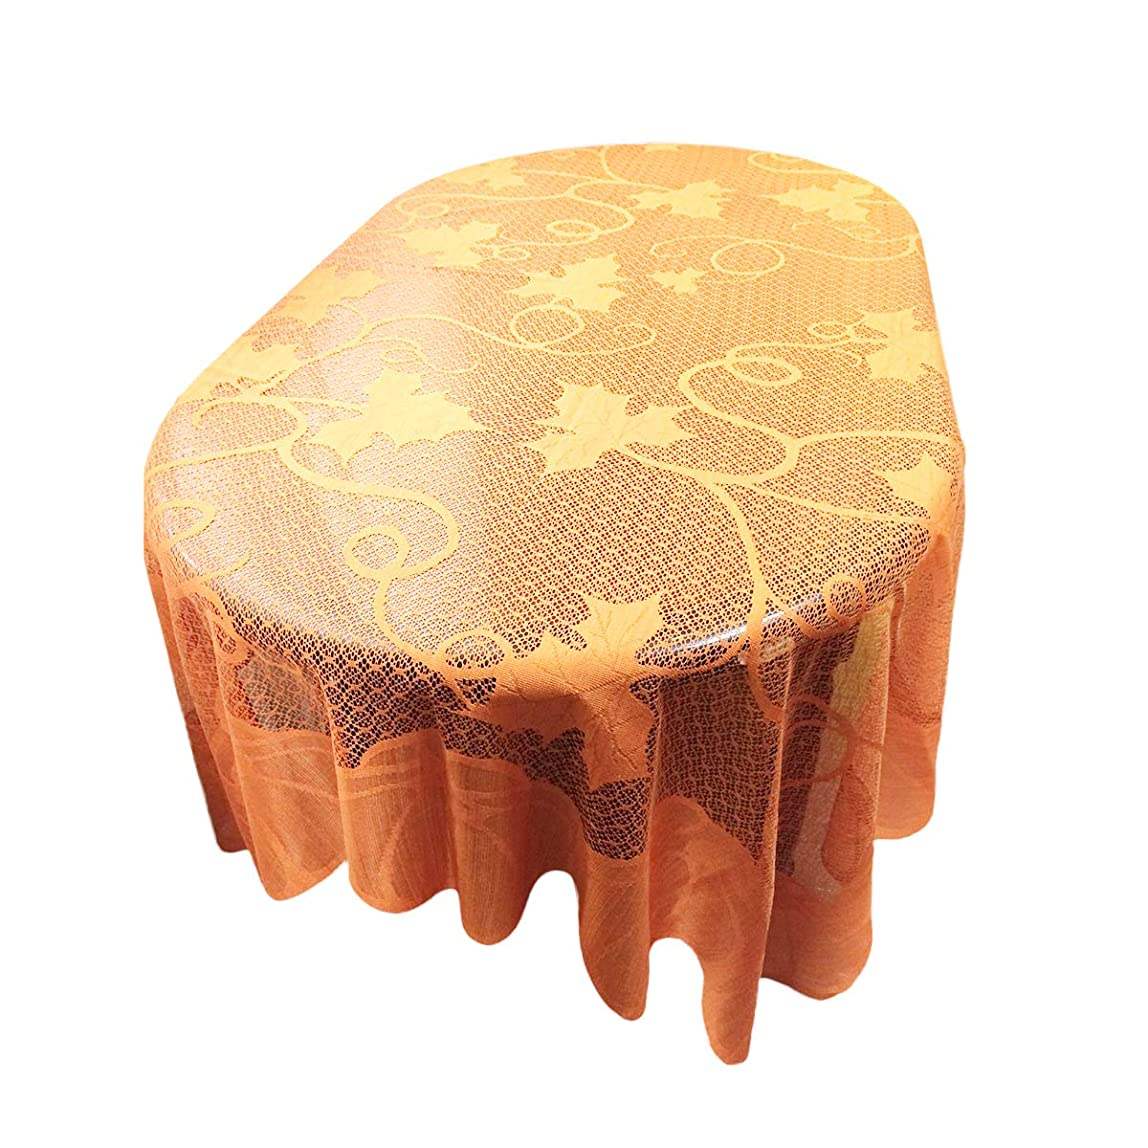 LUOEM Harvest Tablecloth Maple Leaves Pumpkin Tablecloth Lace Tablecover Thanksgiving Day Party Table Decoration 60